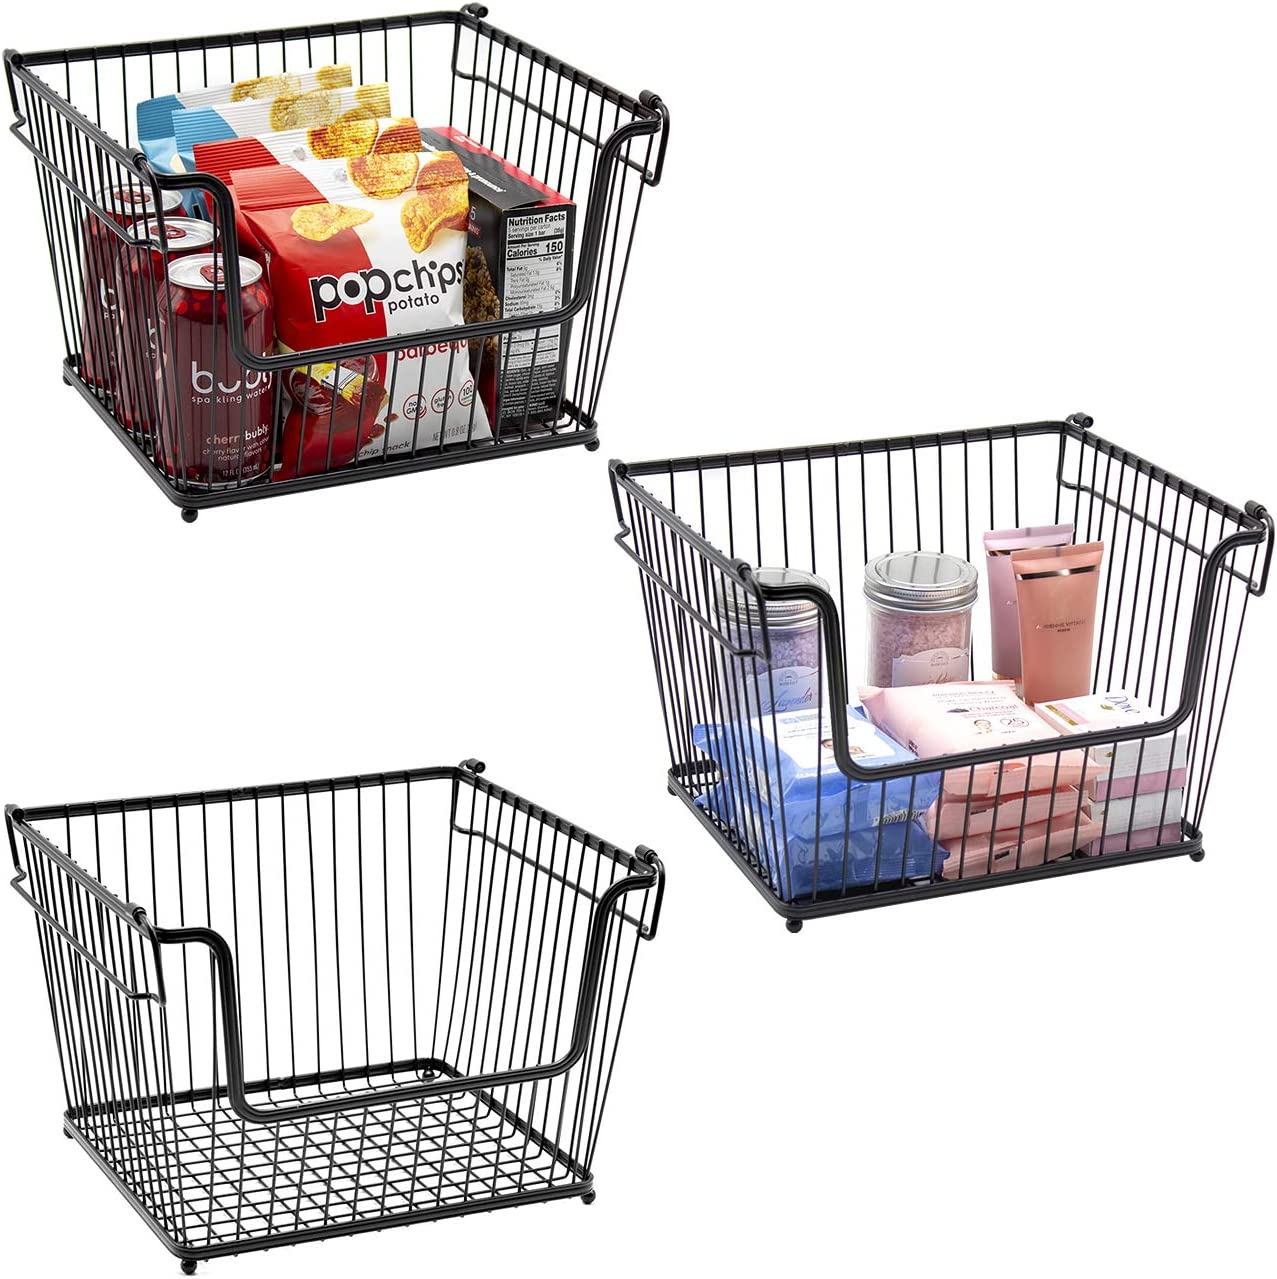 Sorbus Wire Metal Basket Bin, Stackable Storage Baskets, Cubby Bins for Food, Kitchen, Home, Pantry Snack, Vegetable, Potato, Onion, Laundry Room, Office, Farmhouse, Iron Metal (3-Pack, Black)